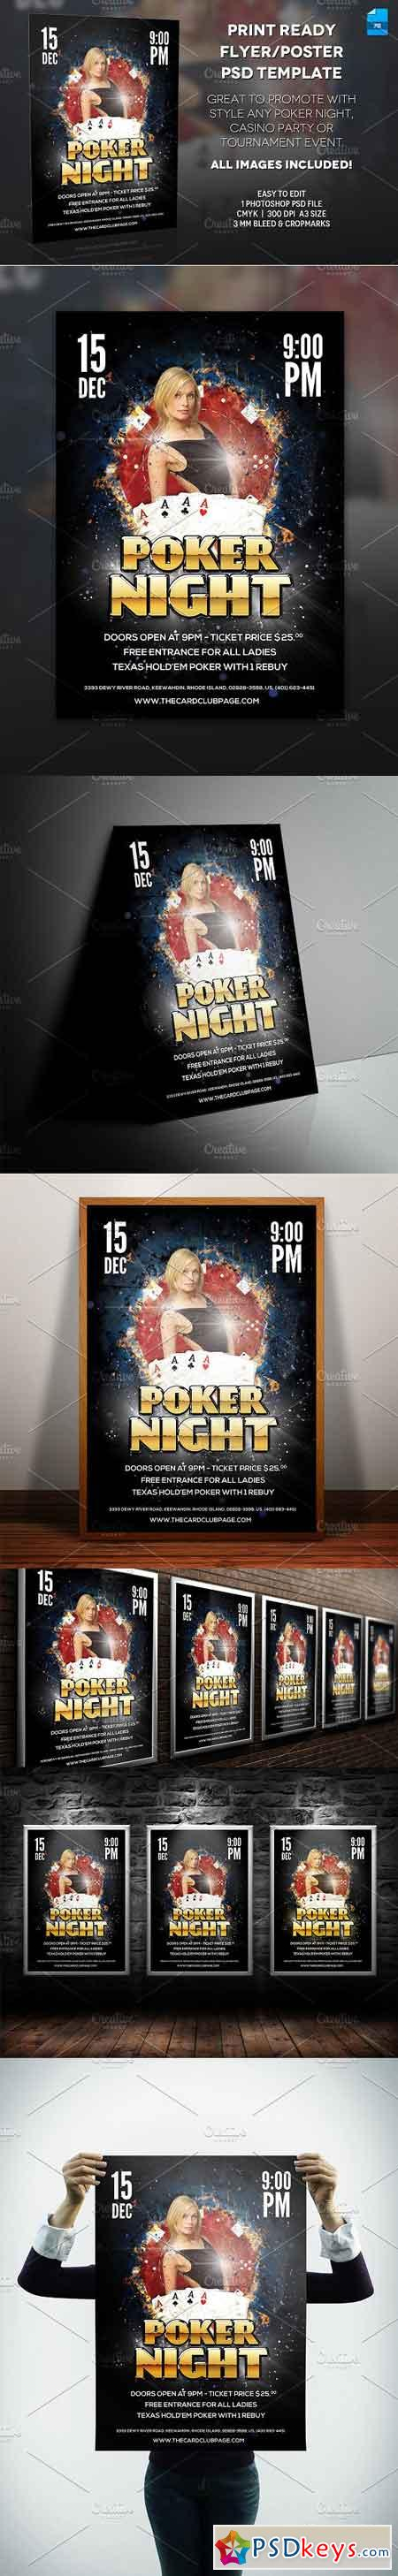 Poker Night Poster Print Template 183023